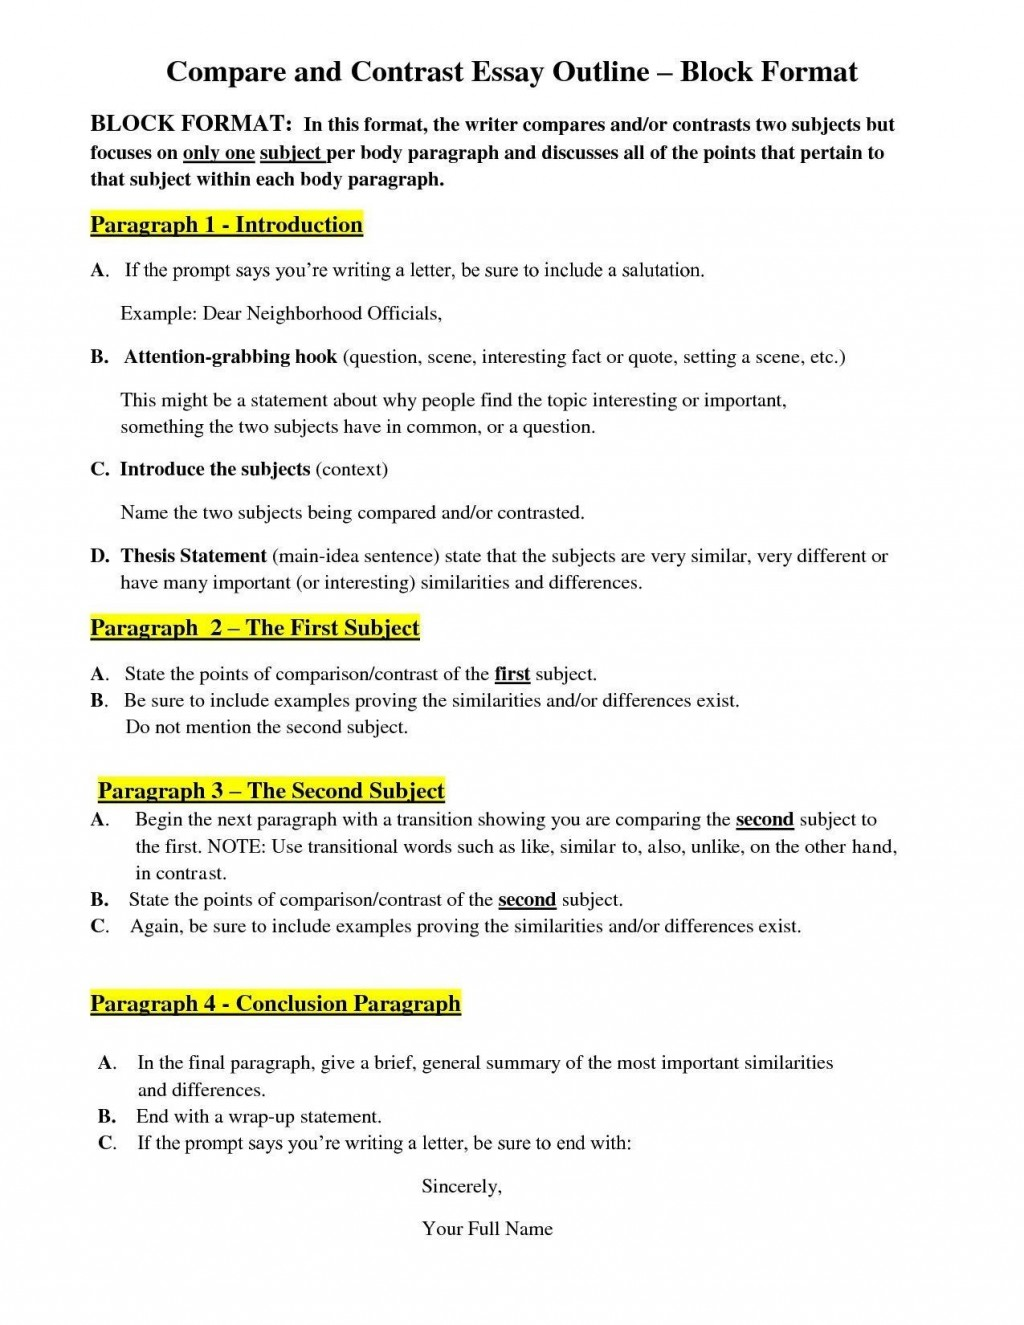 014 Essay Examplempare Andntrastmparison Best Examples Of Scenario In 6th Grade An Goo 3rd Food 5th Middle School Block Format Pdf High 4th Vs Striking Compare And Contrast Example Comparison Free For Large